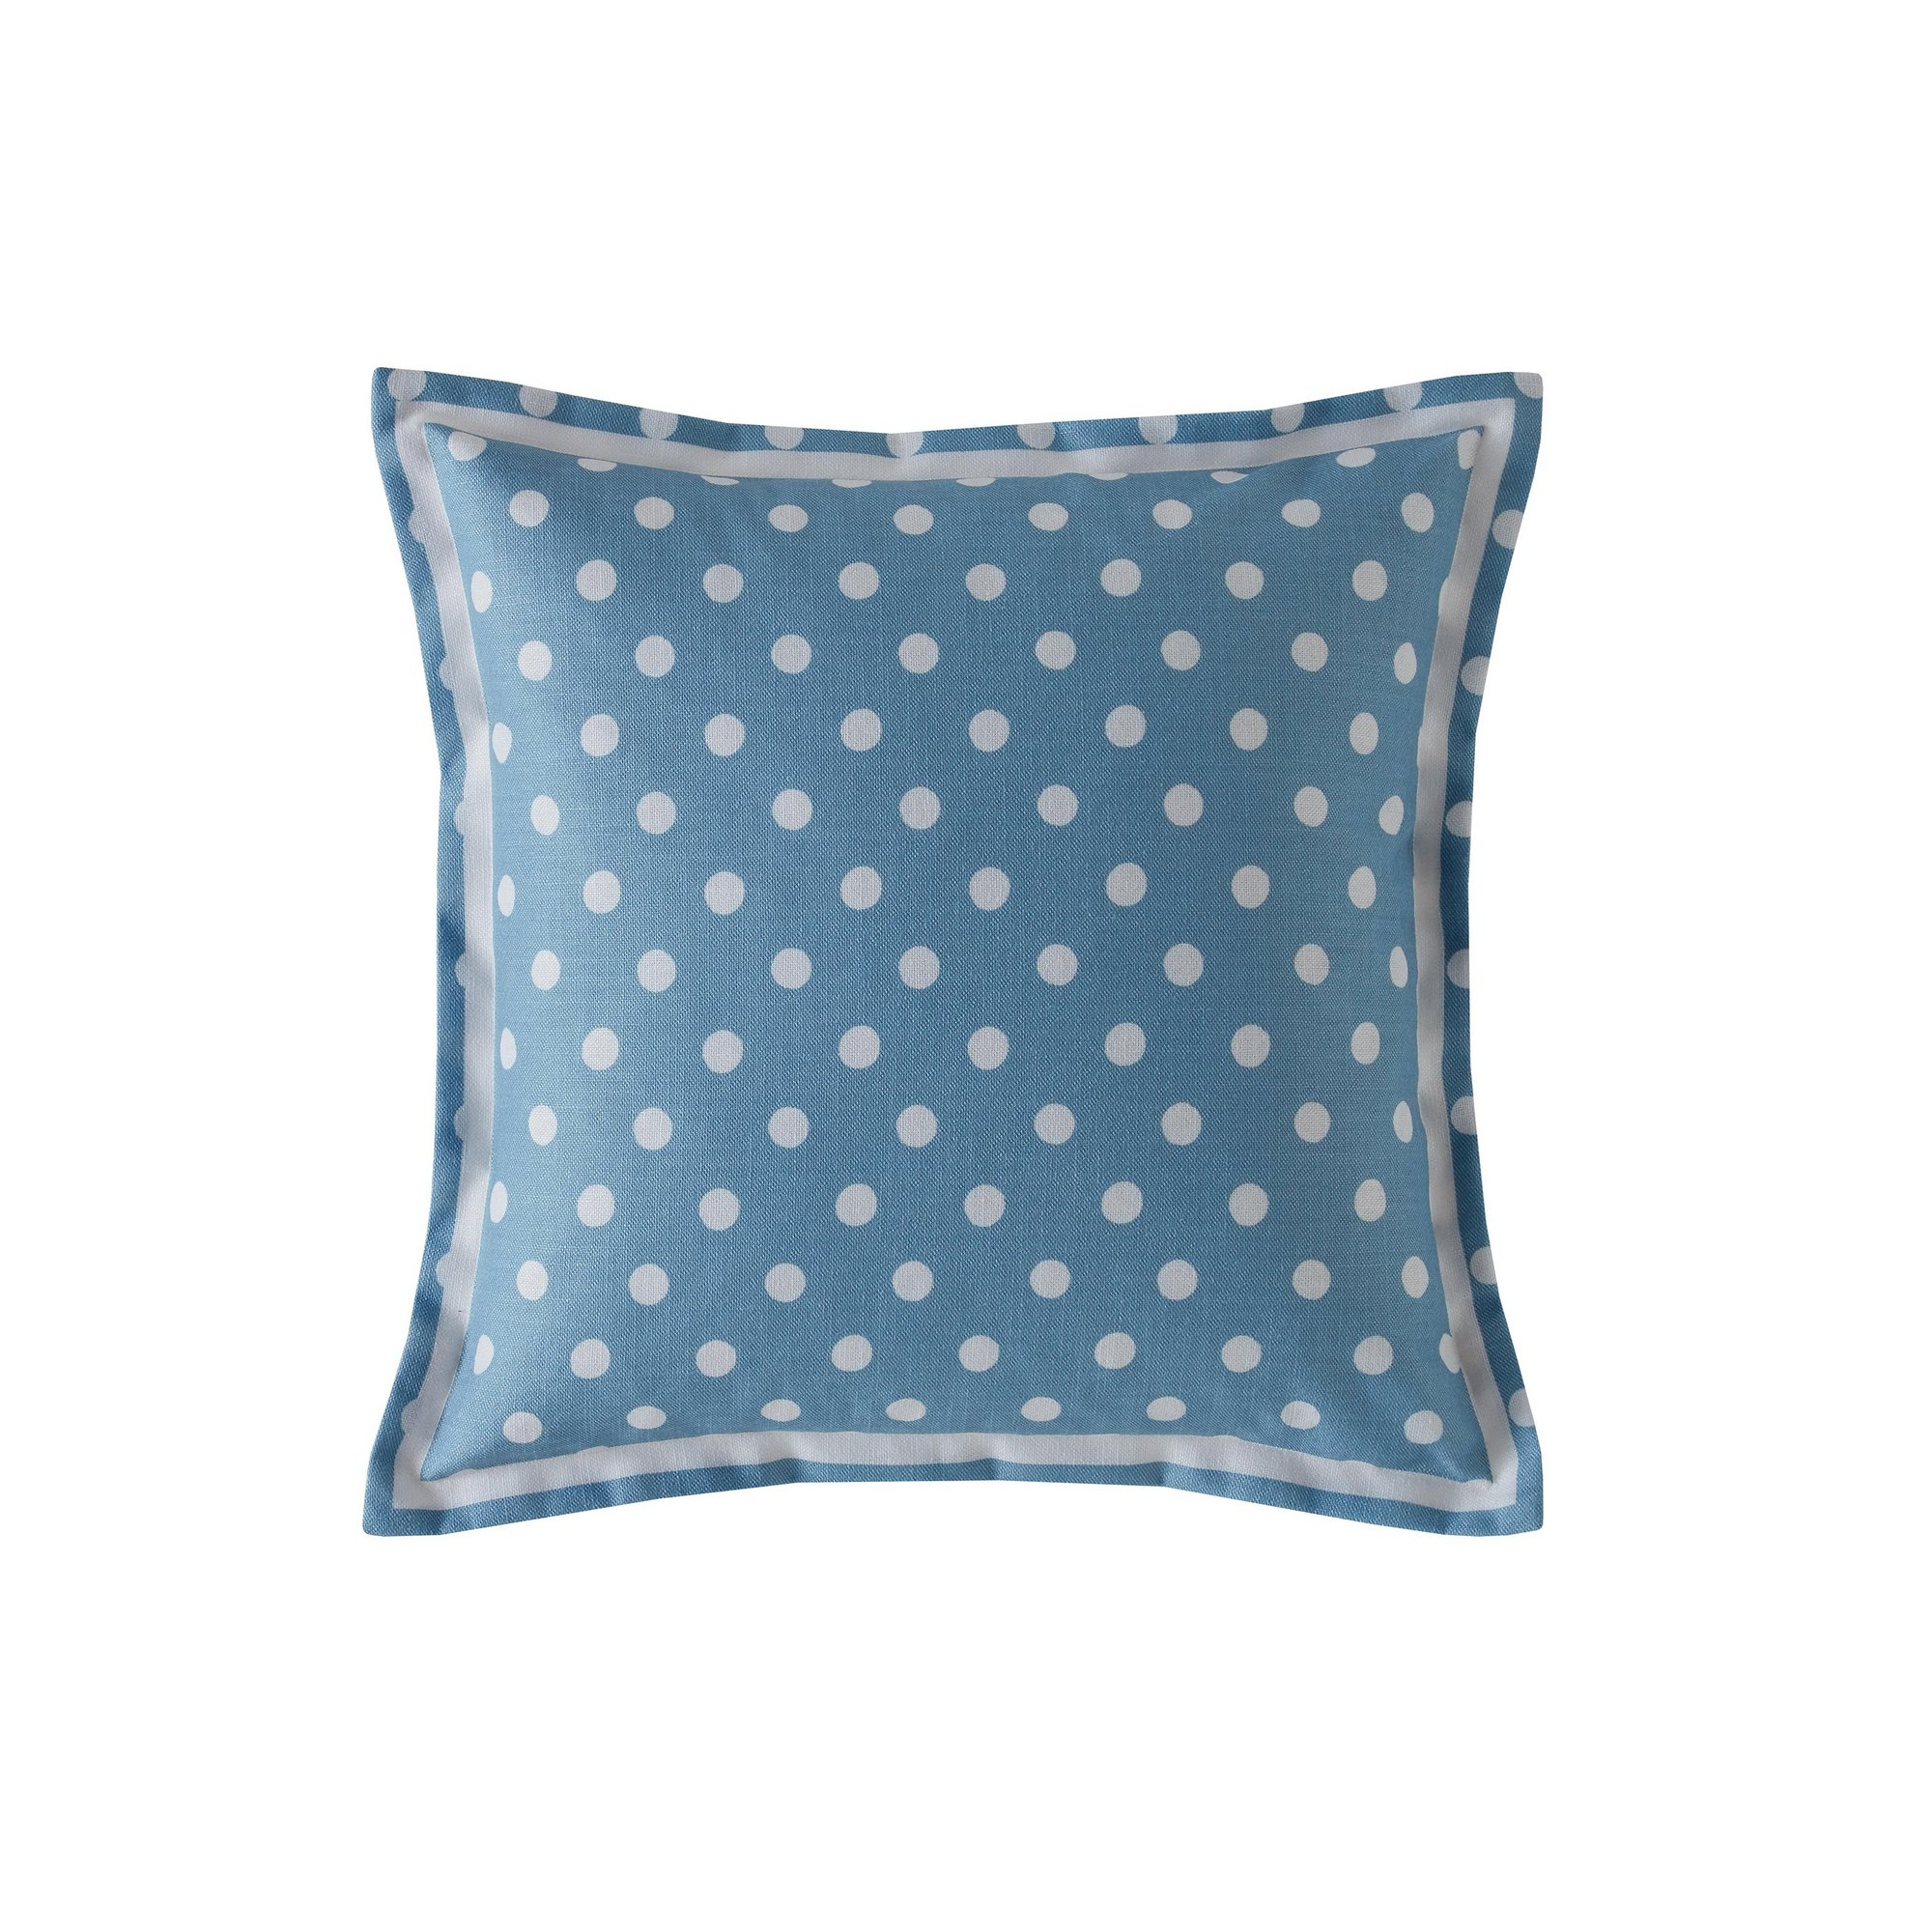 Image of Button Spot Filled Cushion